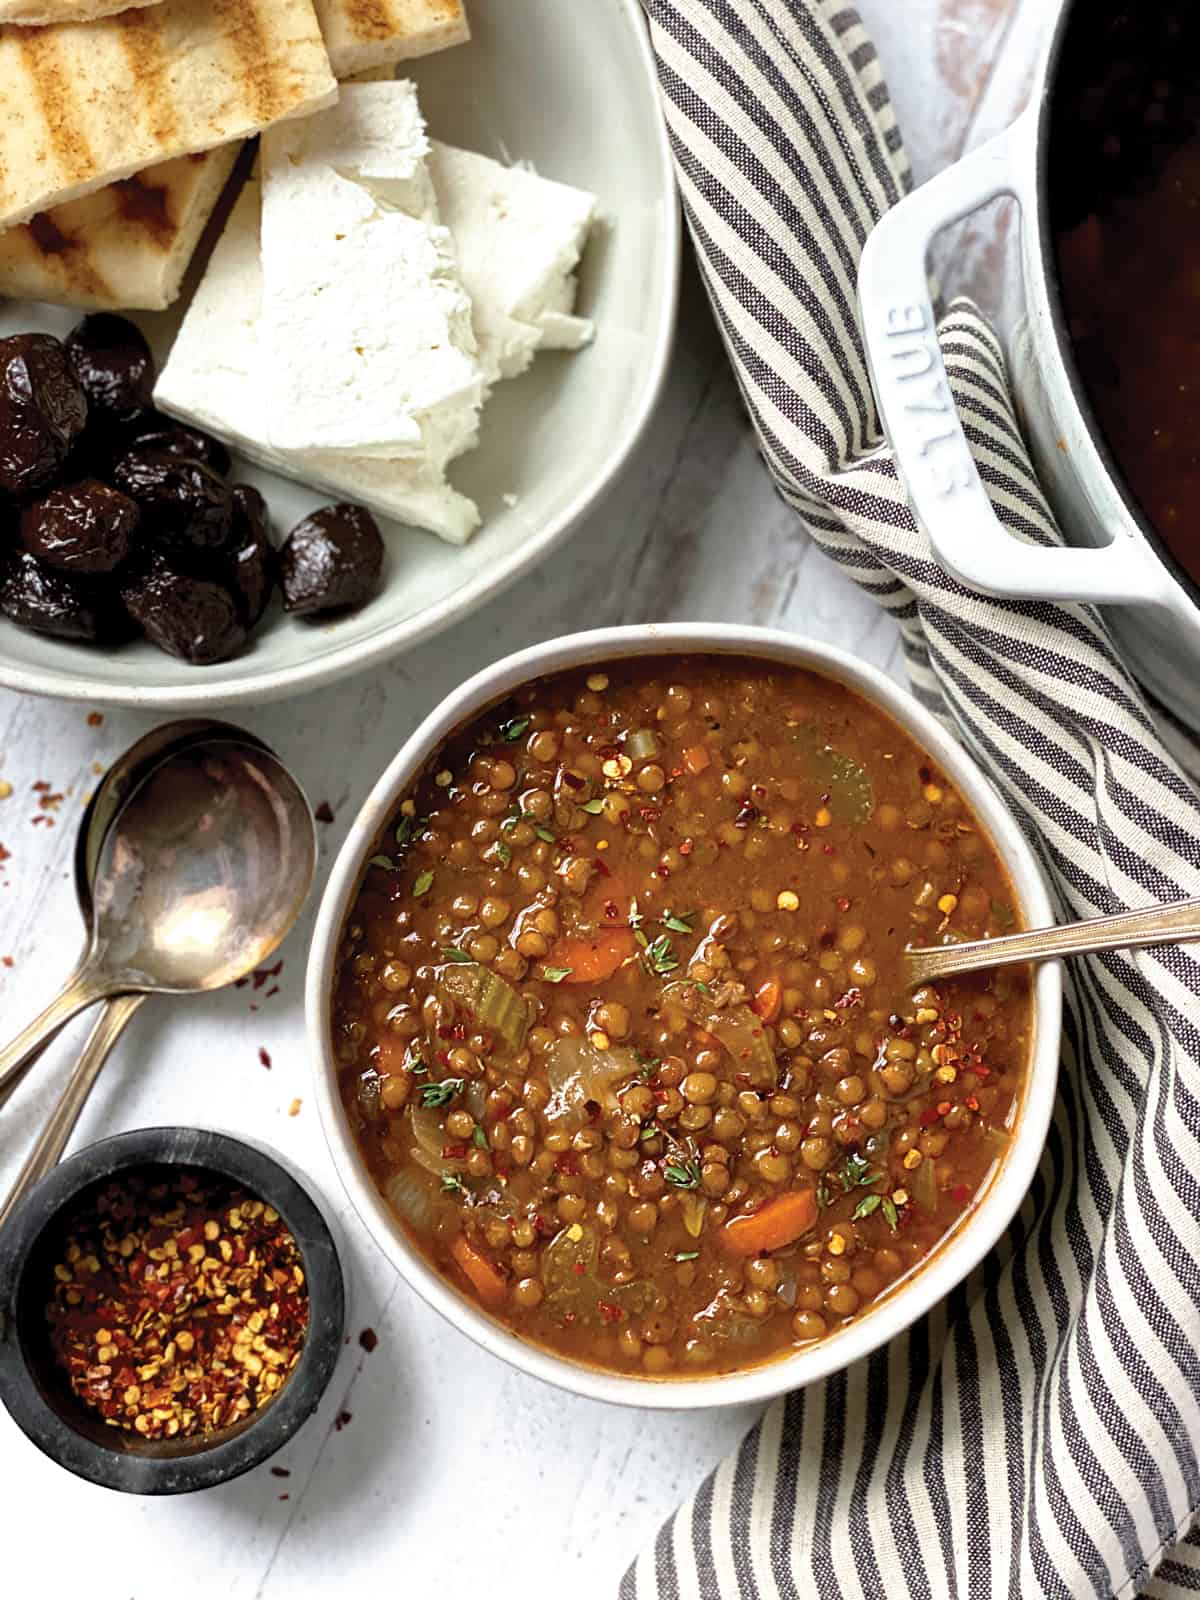 A bowl of greek lentil soup with a spoon, some spoons, a bowl of chili flakes and a plate with olives, feta and pitas at the back.